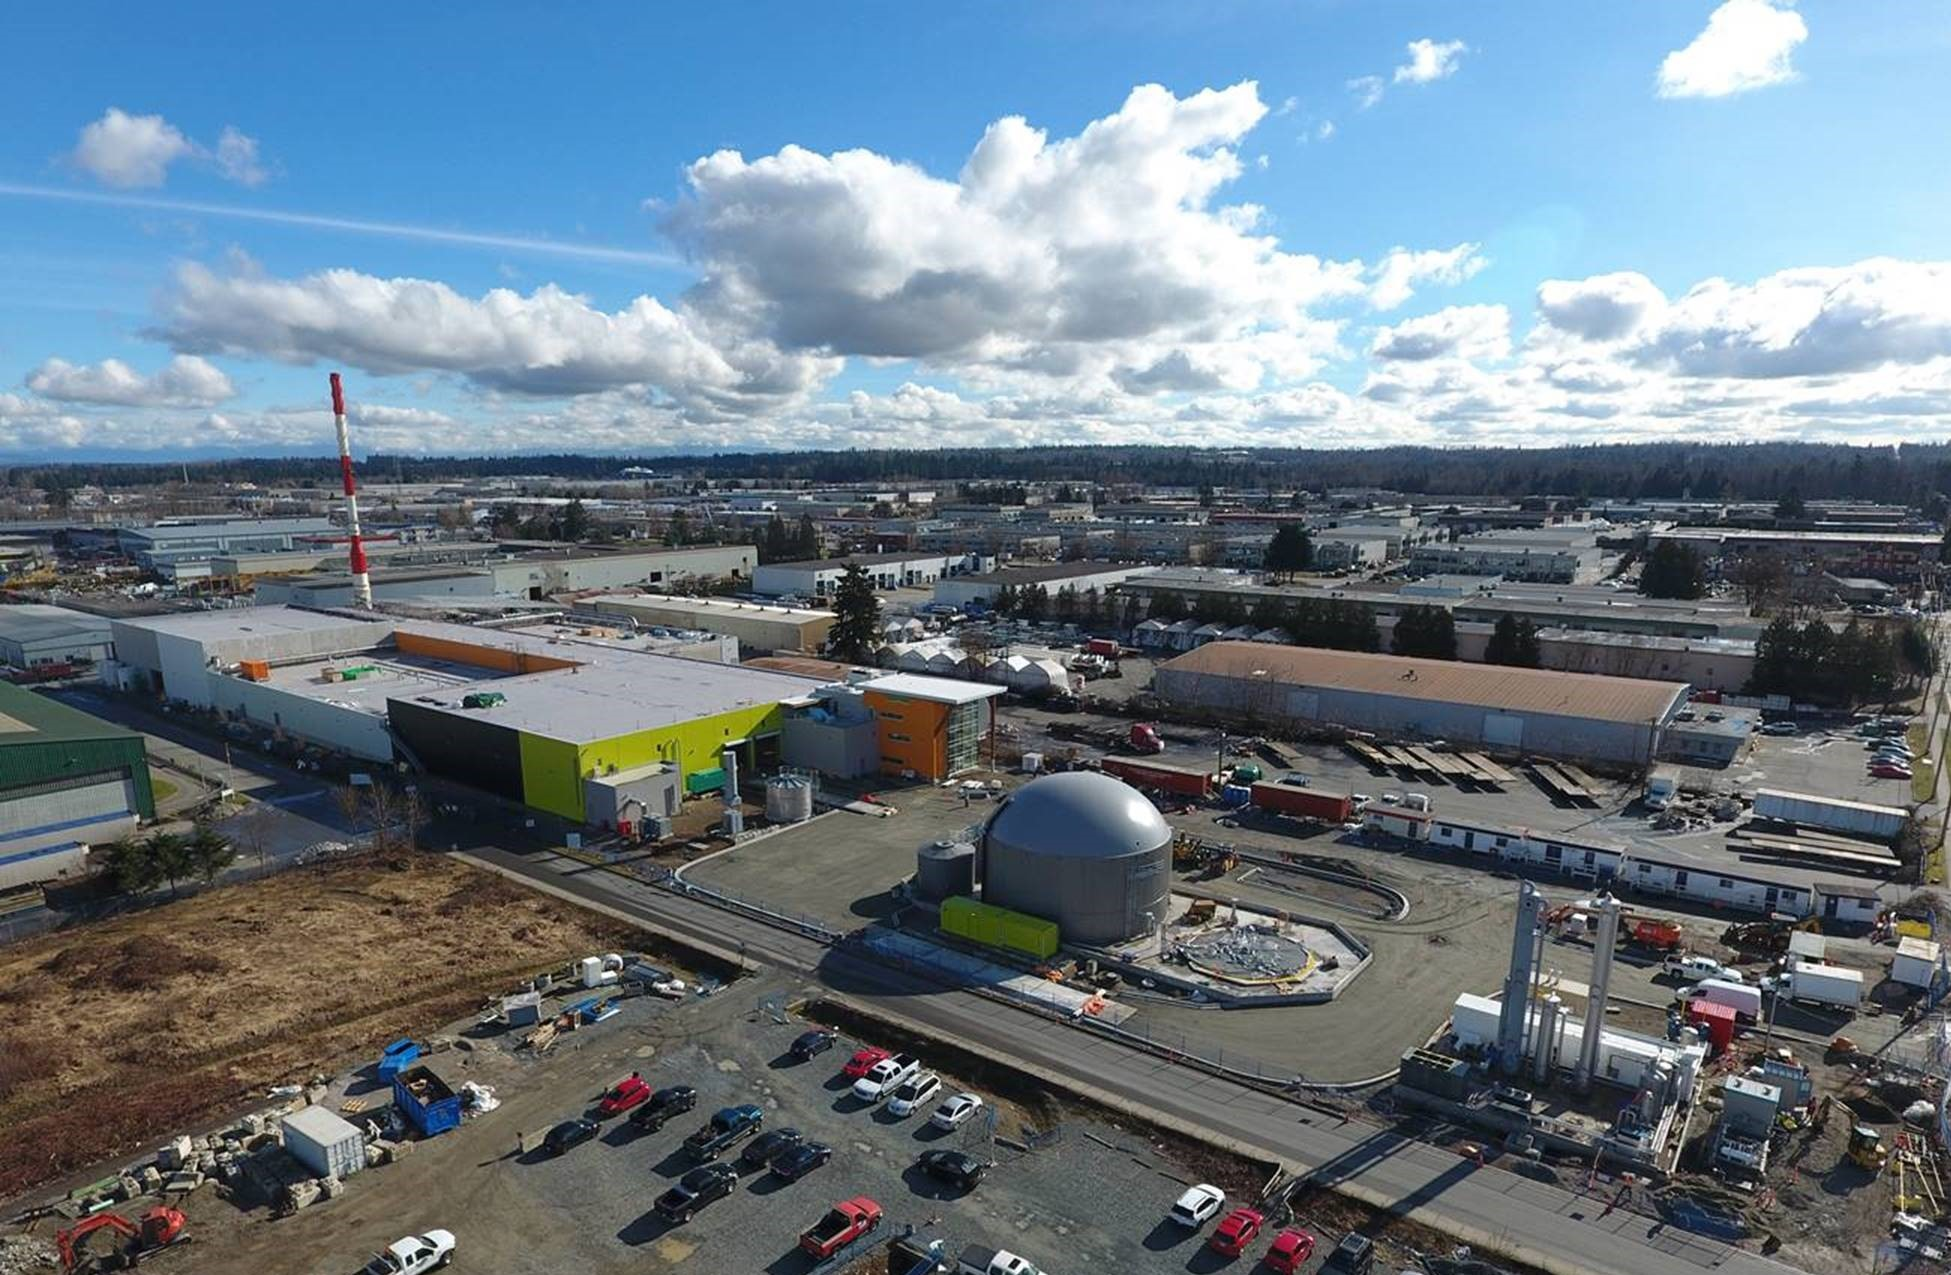 An aerial shot of a biofuel facility during the daytime.